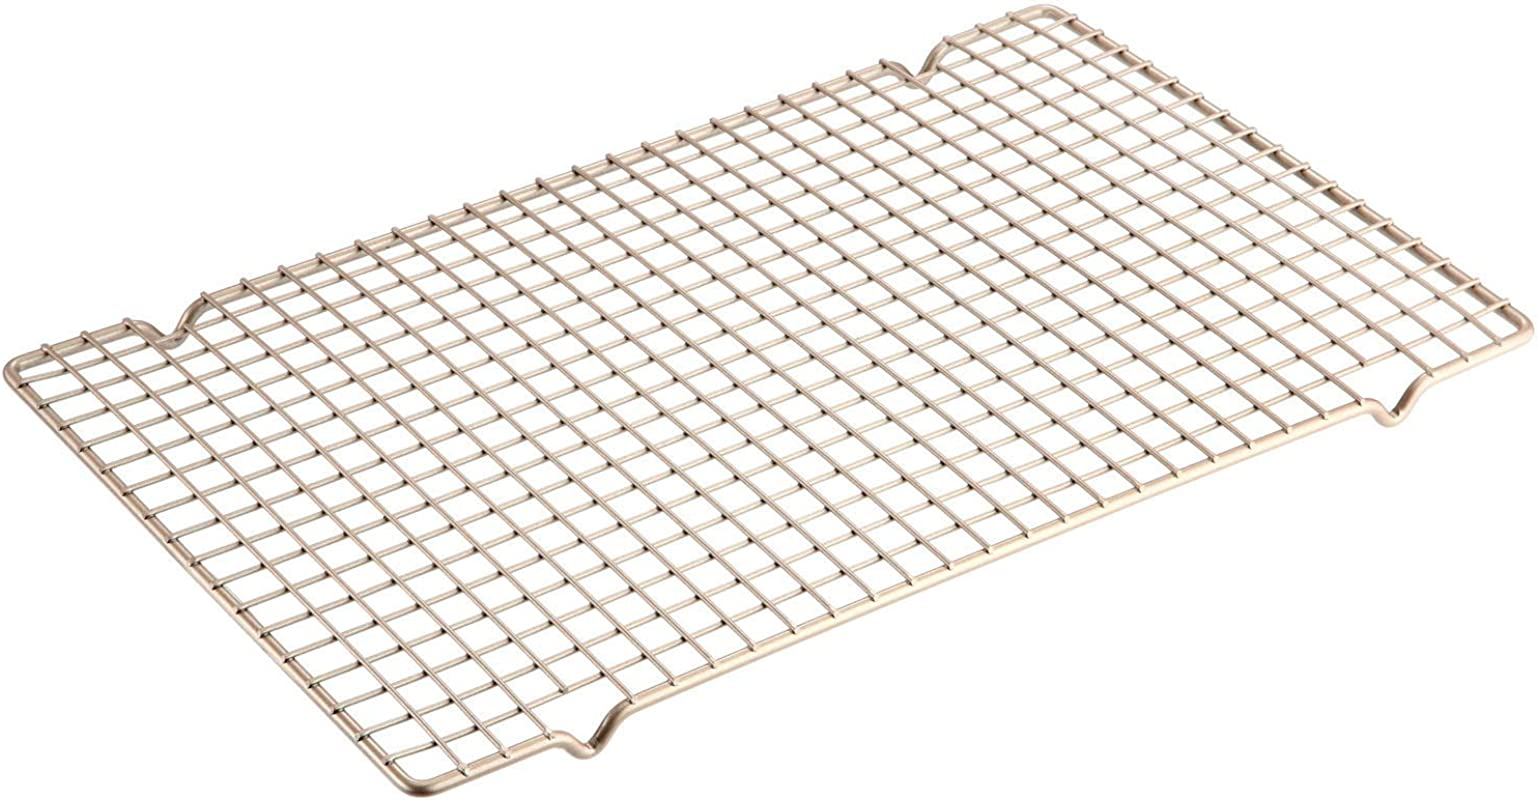 CHEFMADE Baking And Cooling Rack 16 Inch Non Stick Bold Grid Design Rectangle Wire Rack FDA Approved For Oven Baking Champagne Gold